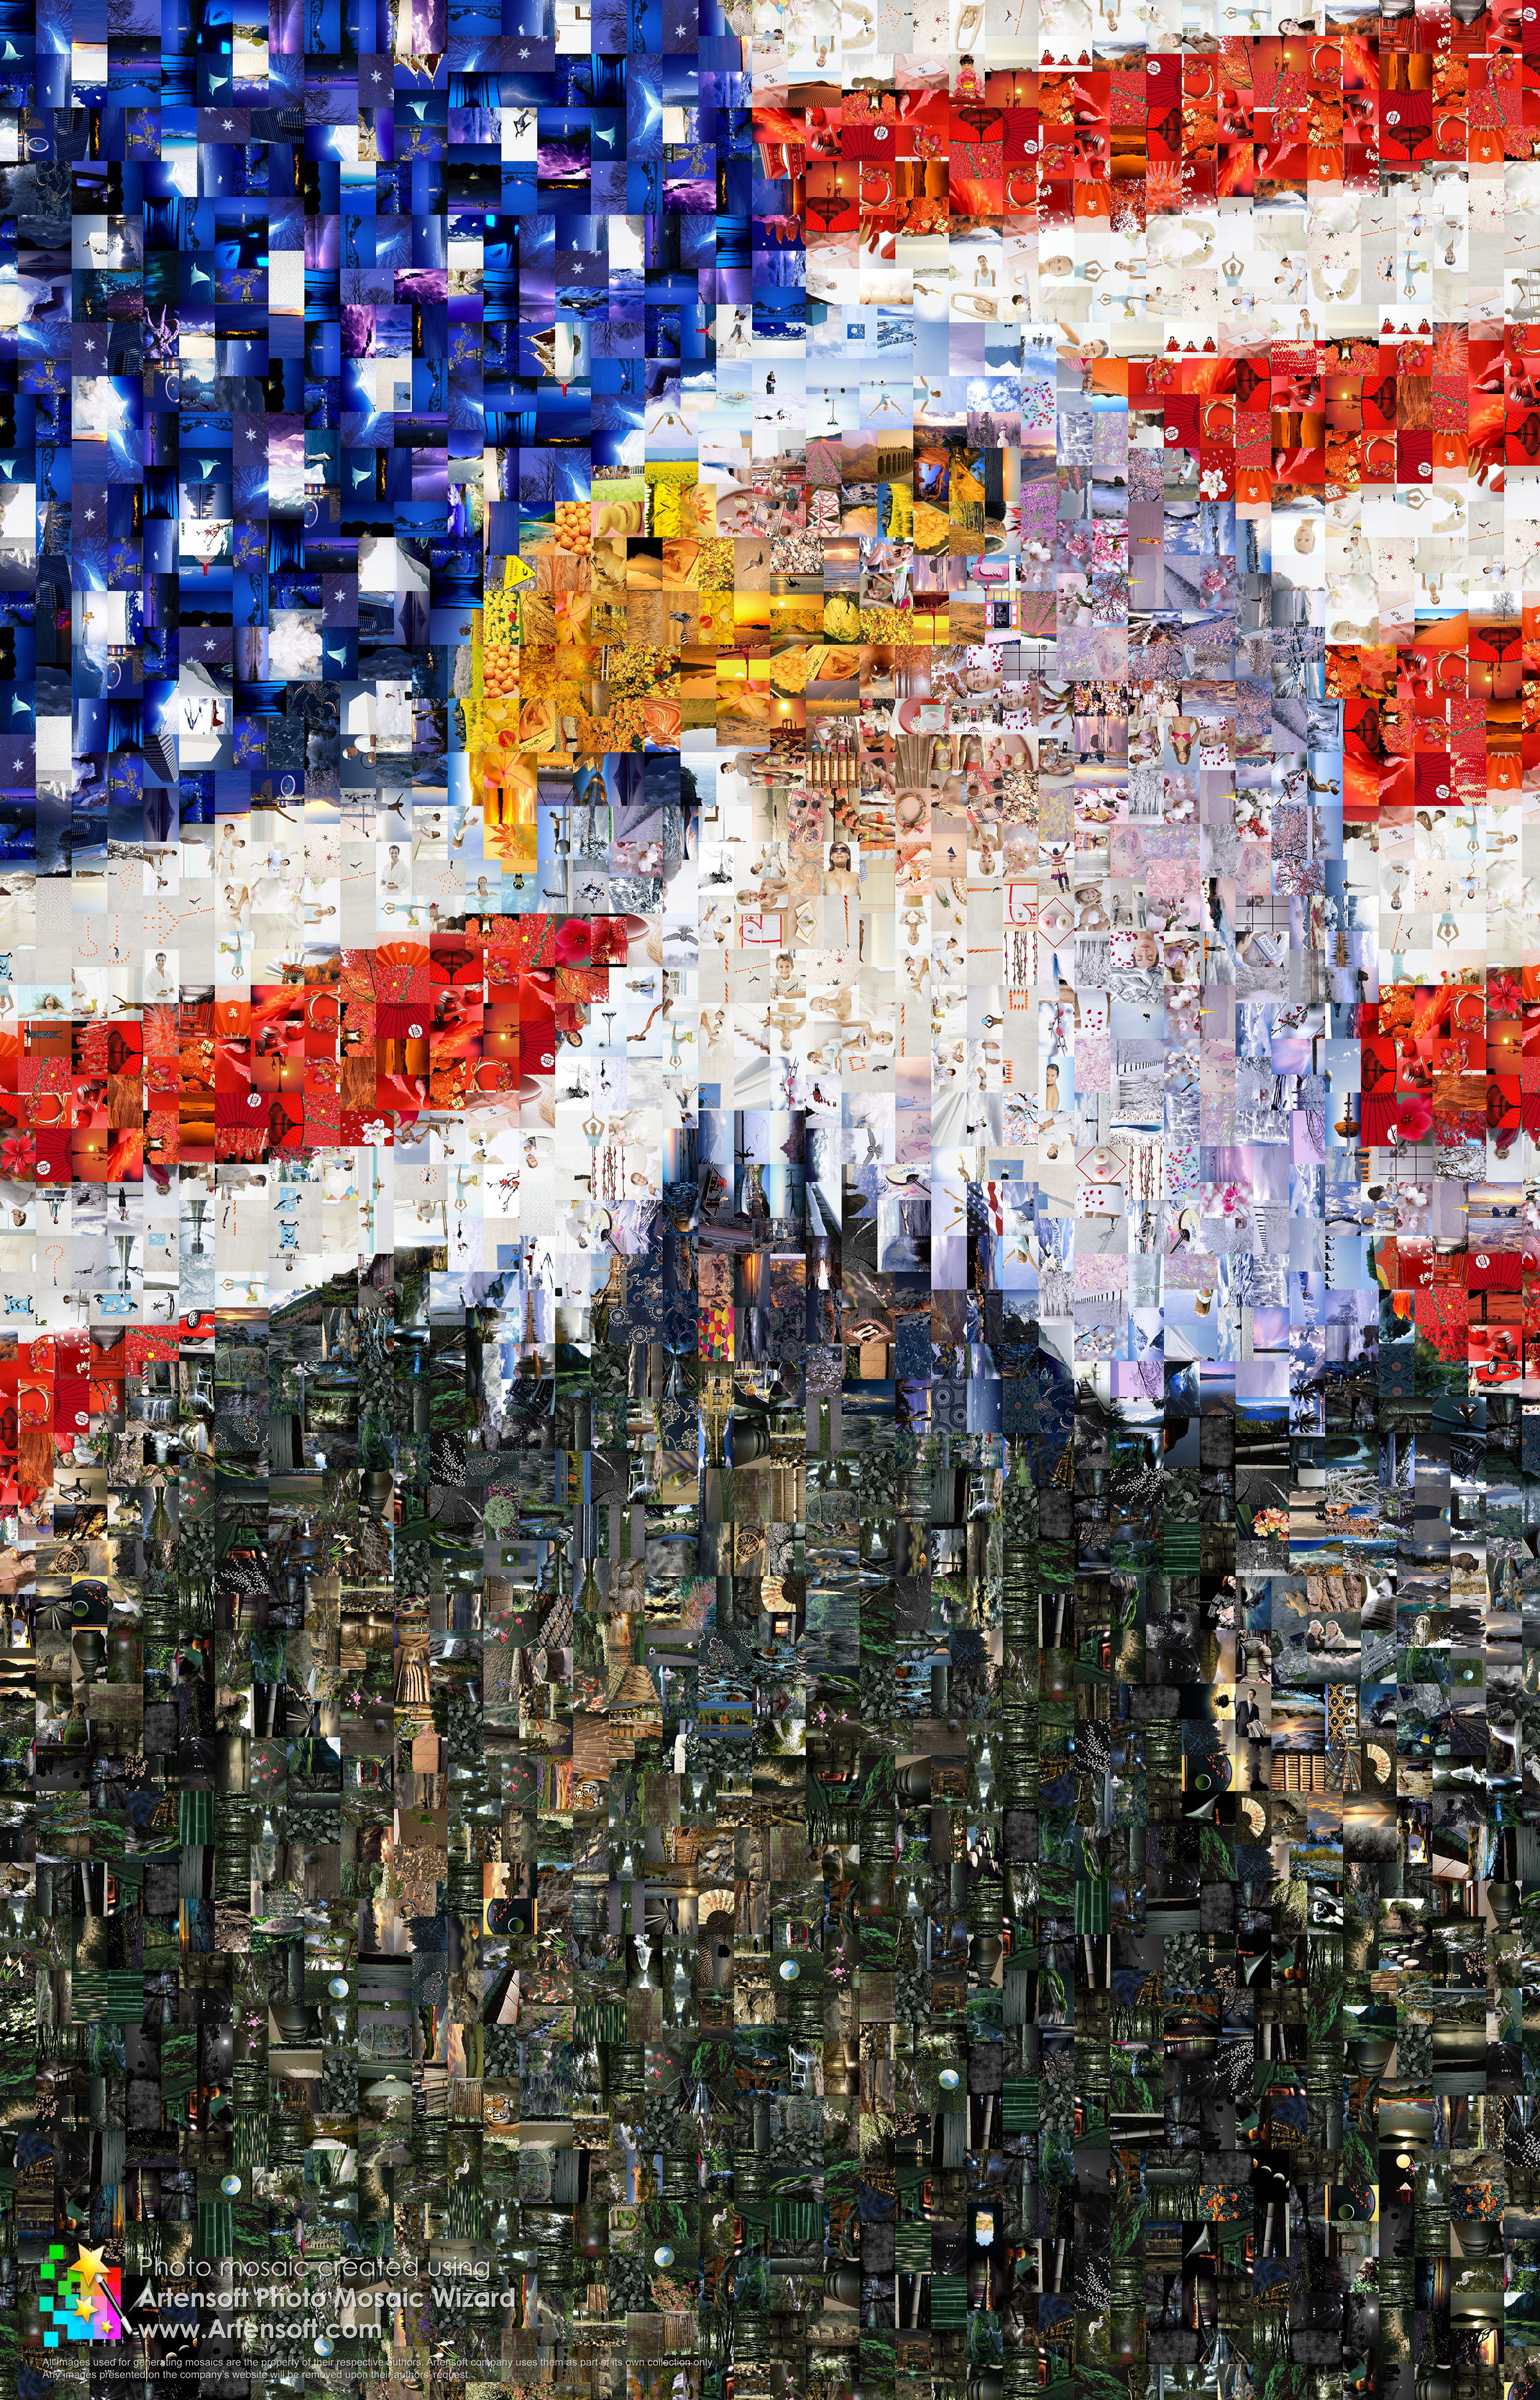 Download Full Size Extra Large Photo Mosaic Here 7138x11122 Pixels 18Mb